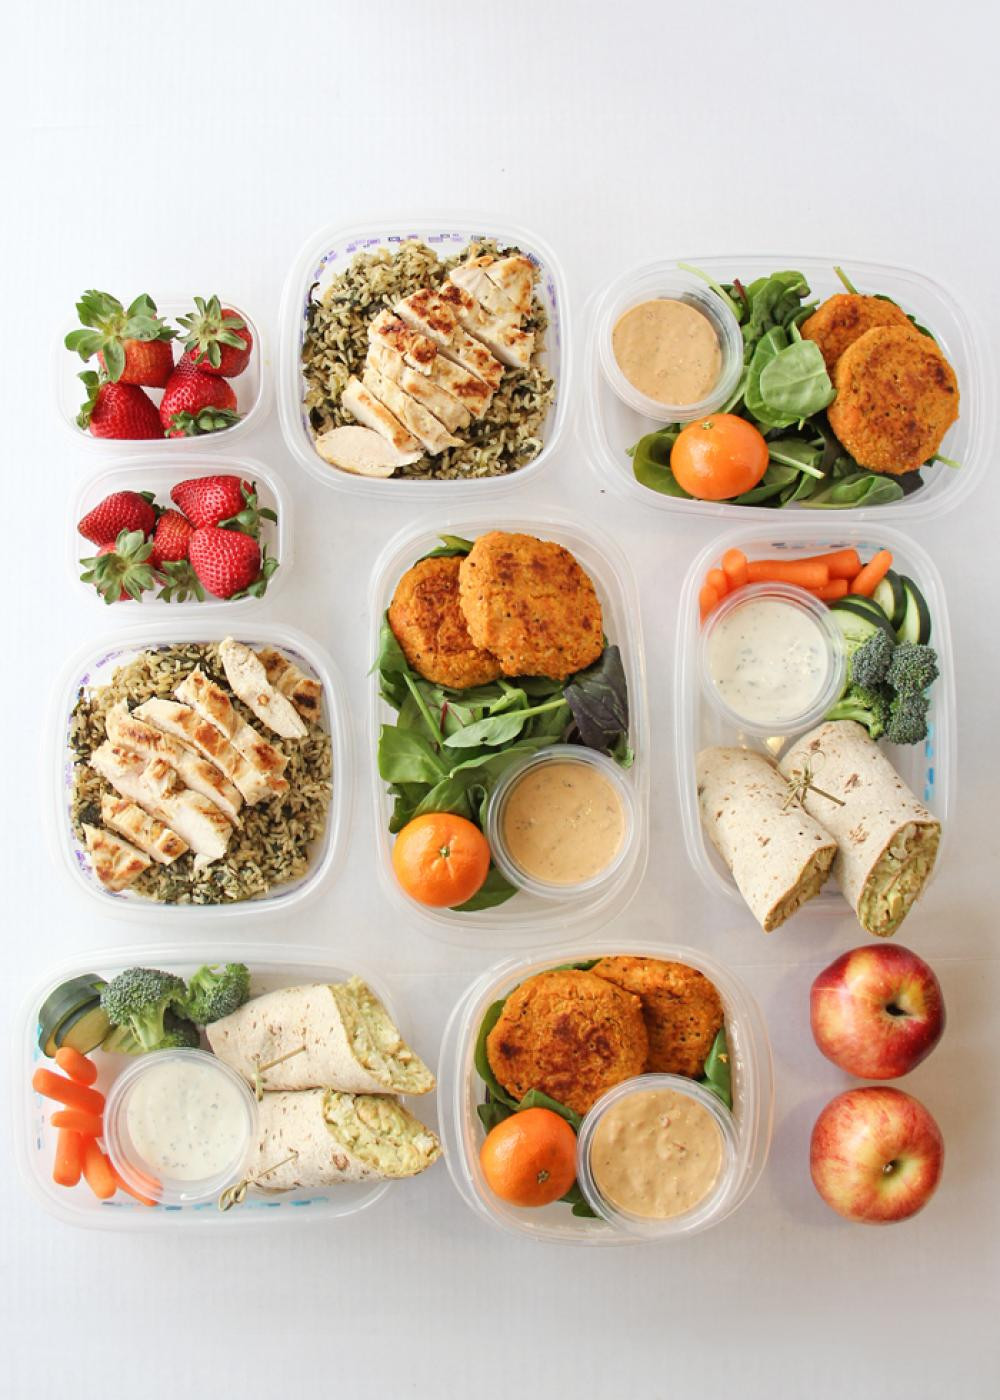 Healthy Lunches And Dinners  Recipes to Prepare Seven Healthy Lunches For The Week